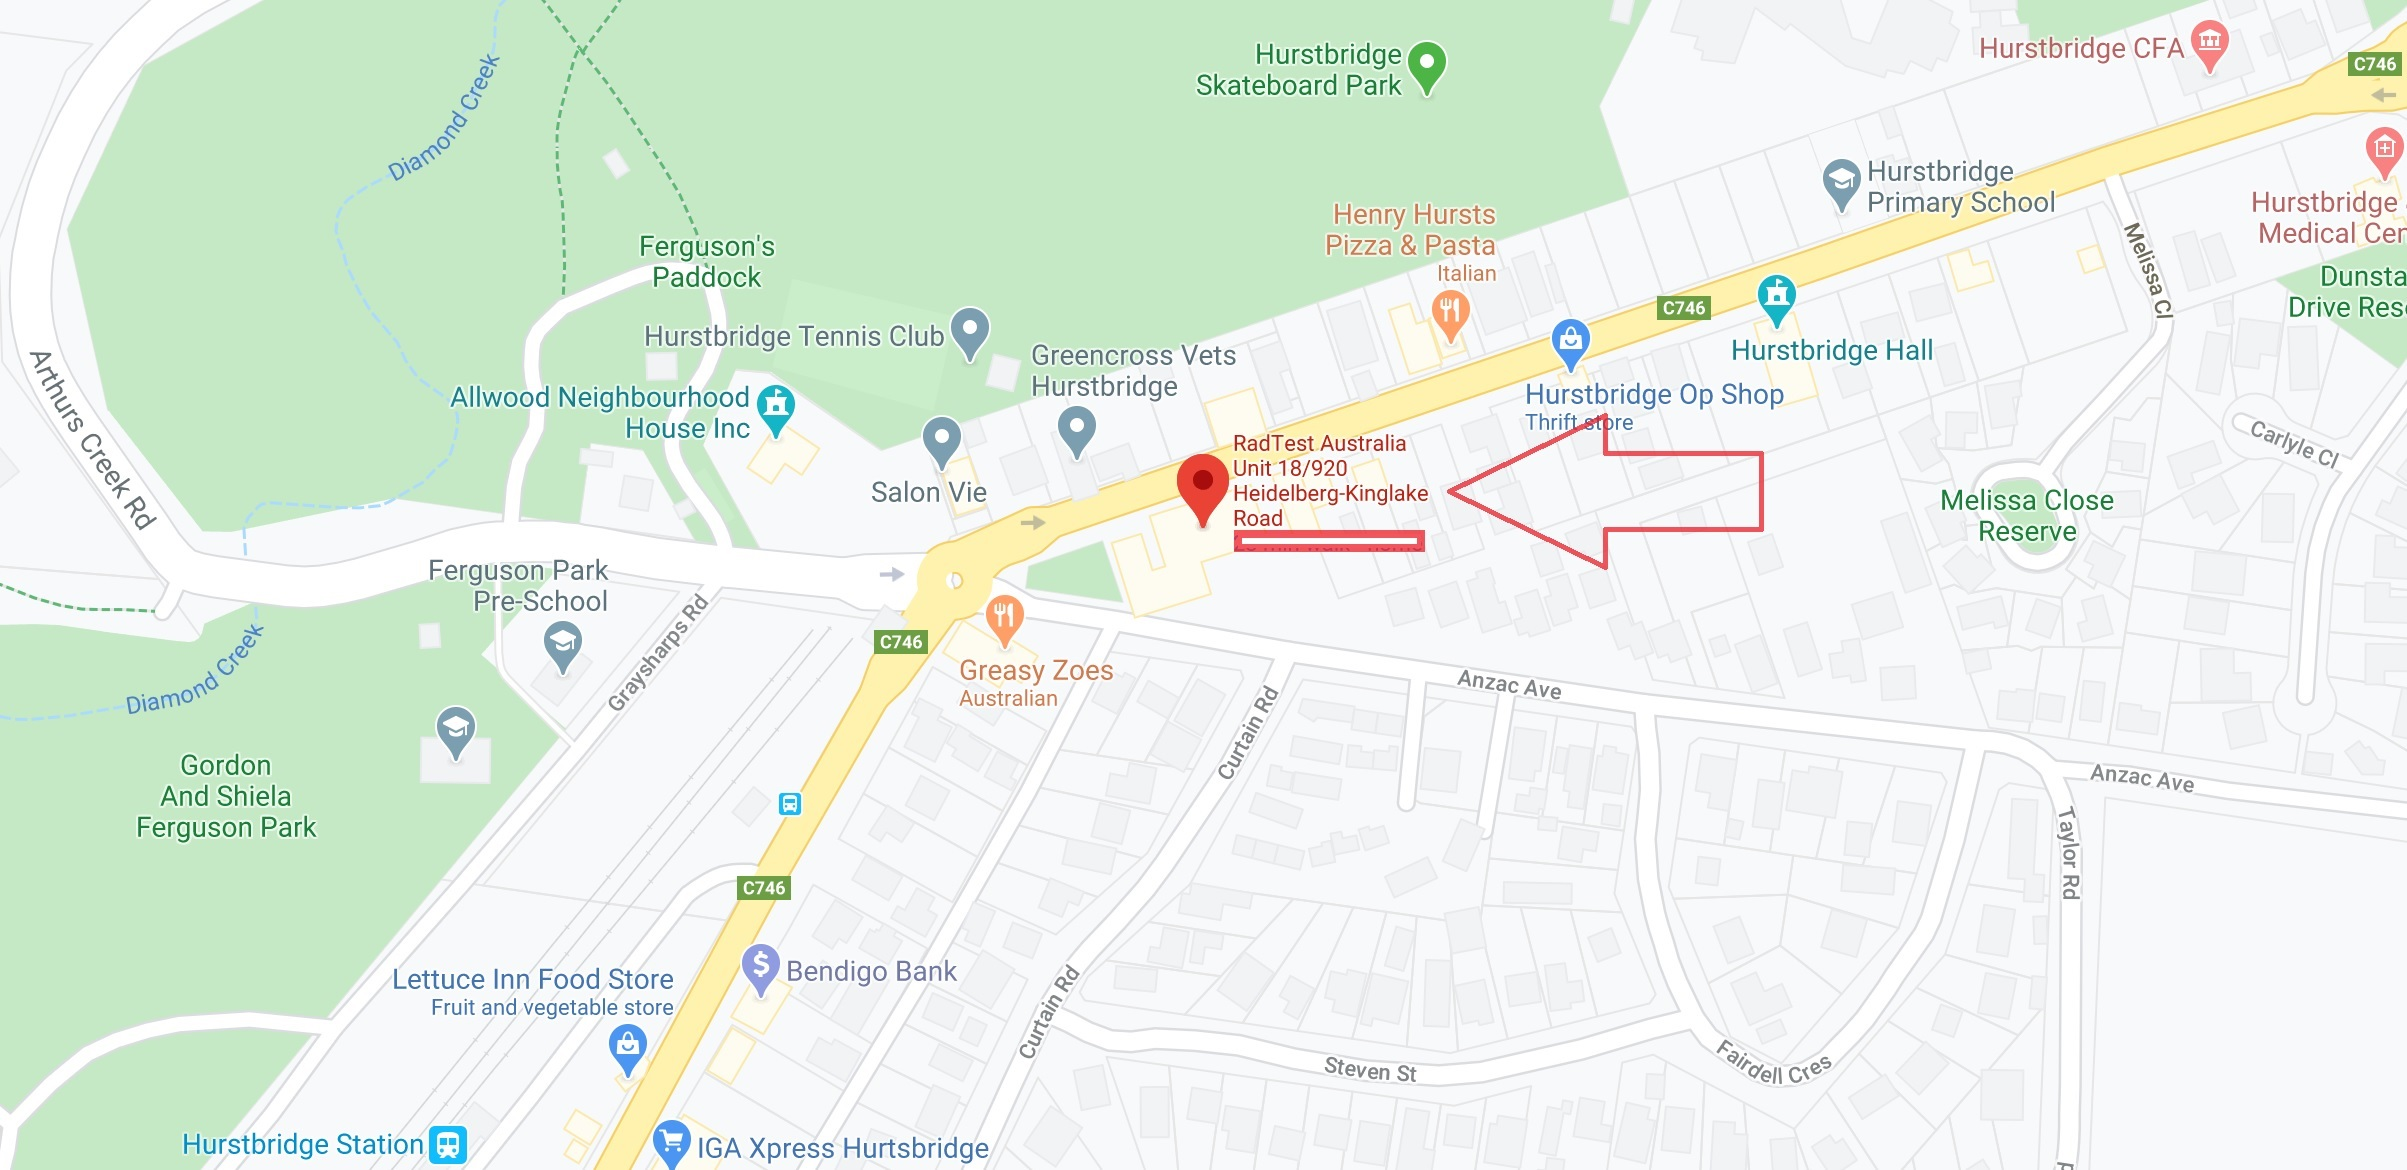 How to find RadTest - 18/920 Heidelberg-Kinglake Rd, Hurstbridge, VIC, 3099 (park at rear, Anzac Ave)